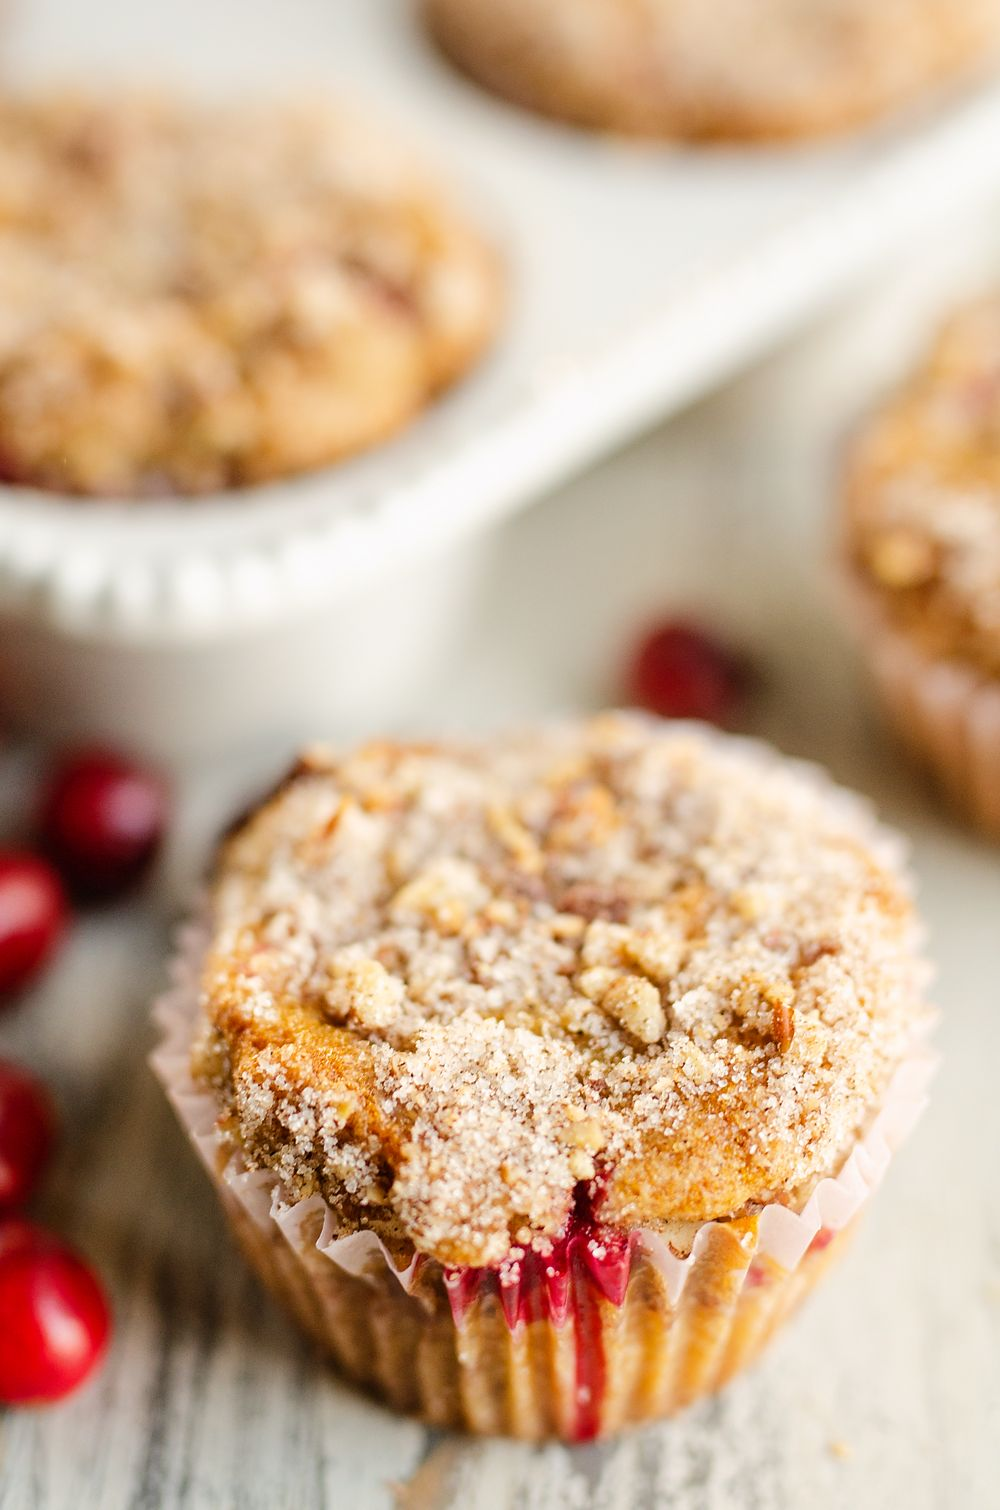 Cranberry Streusel Muffins In 2020 Dessert Recipes Easy Muffin Streusel Coffee Cake Recipes